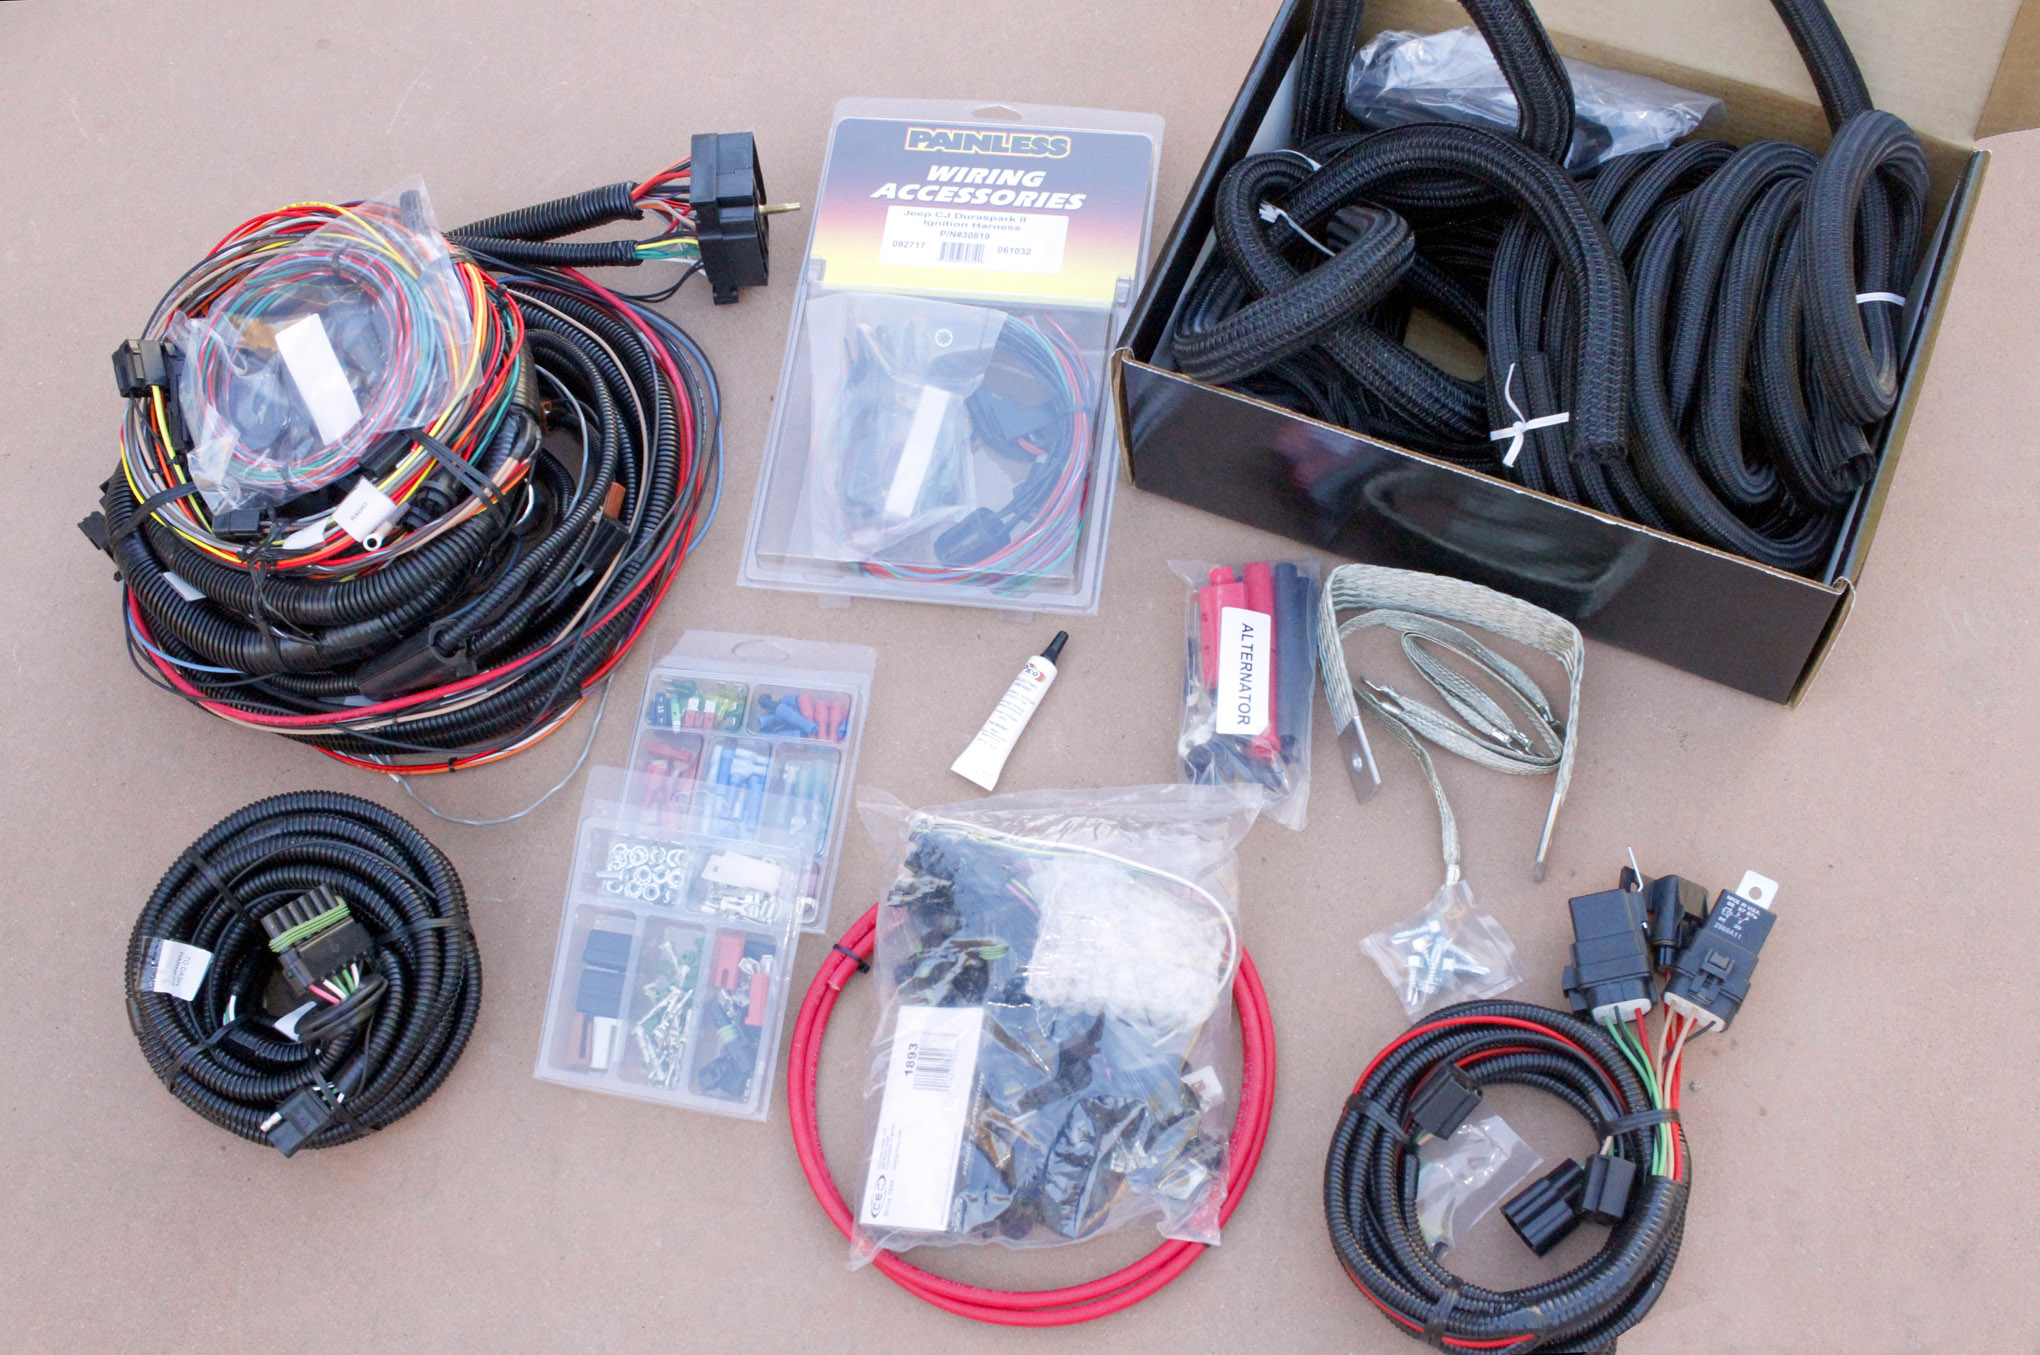 10150 painless wiring harness wiring diagram 10150 painless wiring harness [ 2040 x 1355 Pixel ]